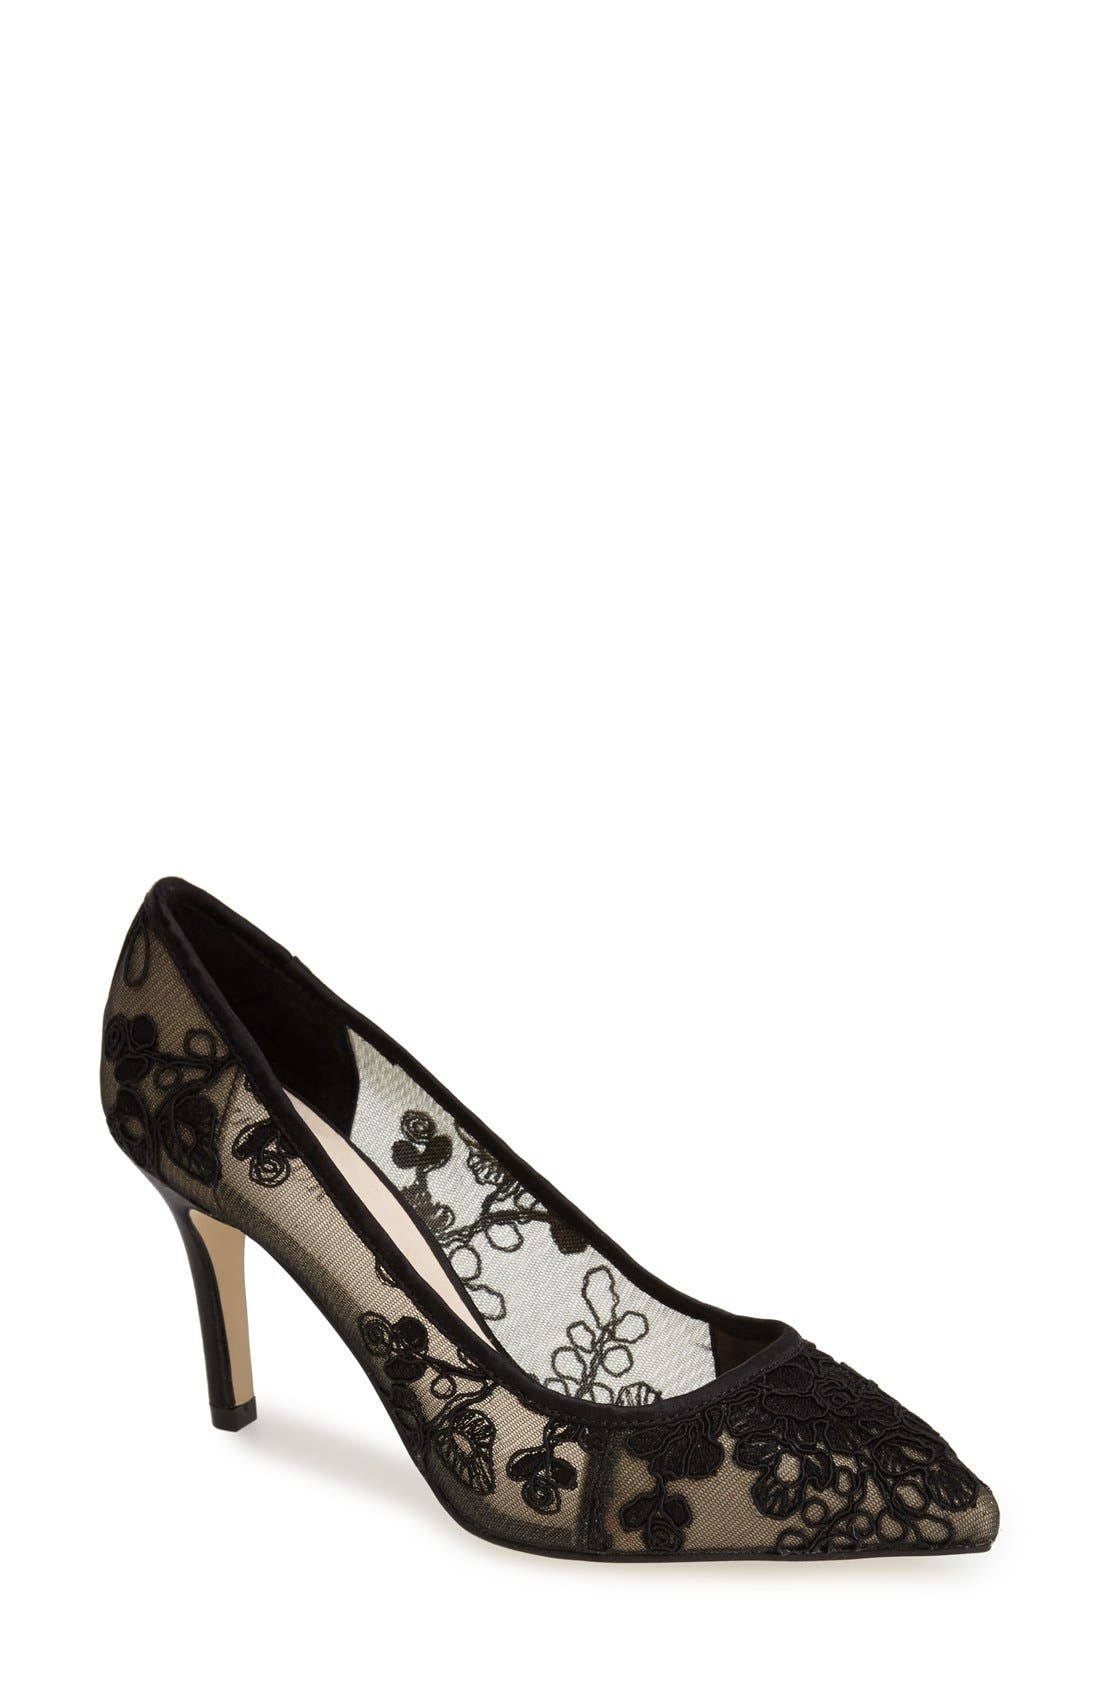 Alternate Image 1 Selected - Menbur 'Delavigne' Lace Pump (Women)